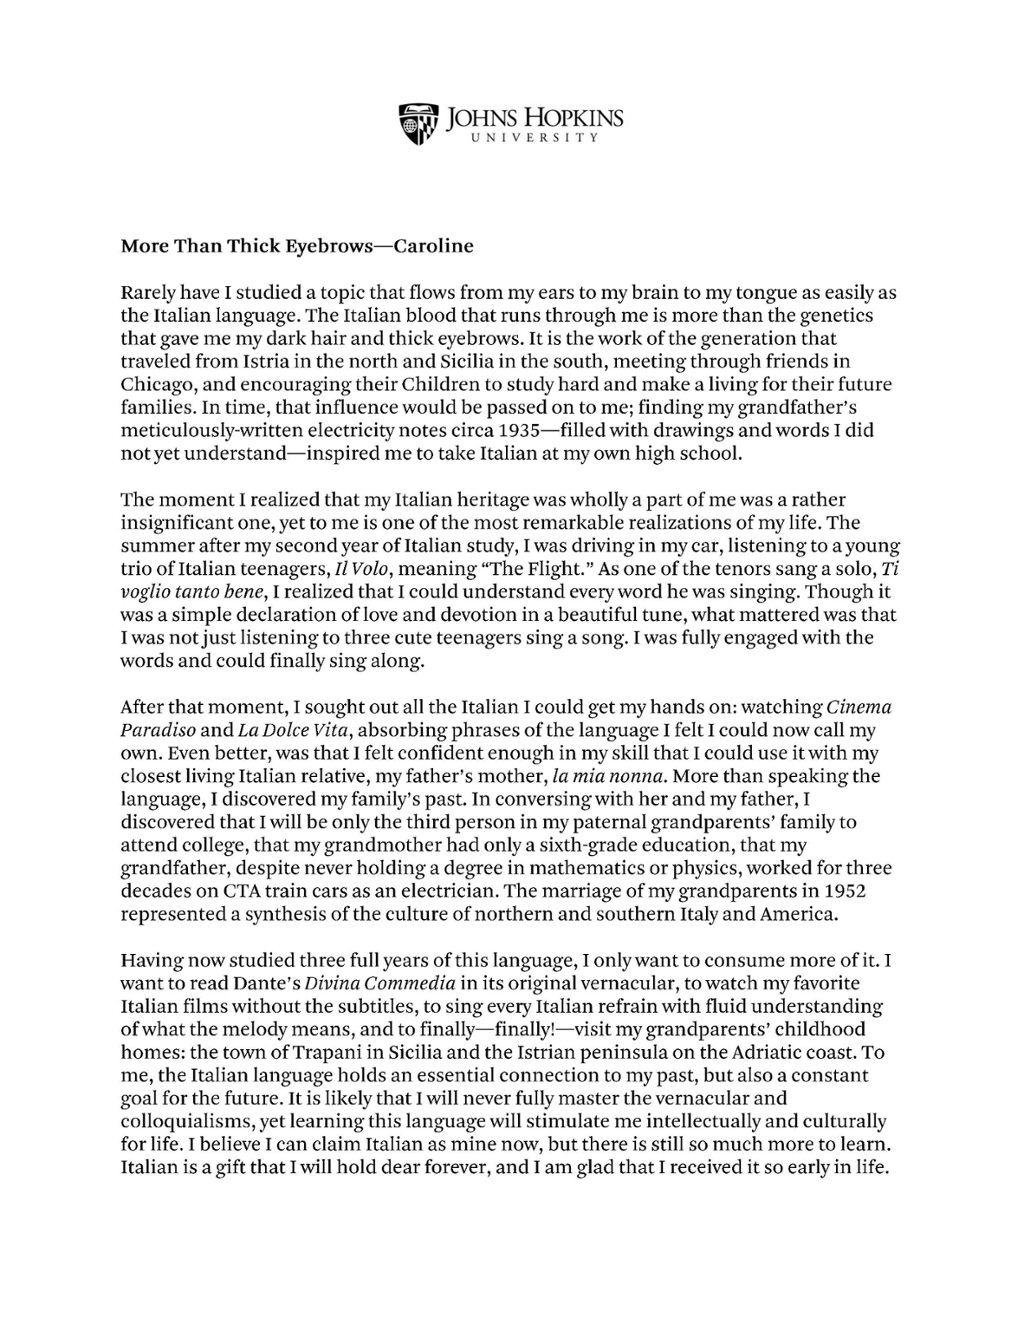 Best college admission essays 2012